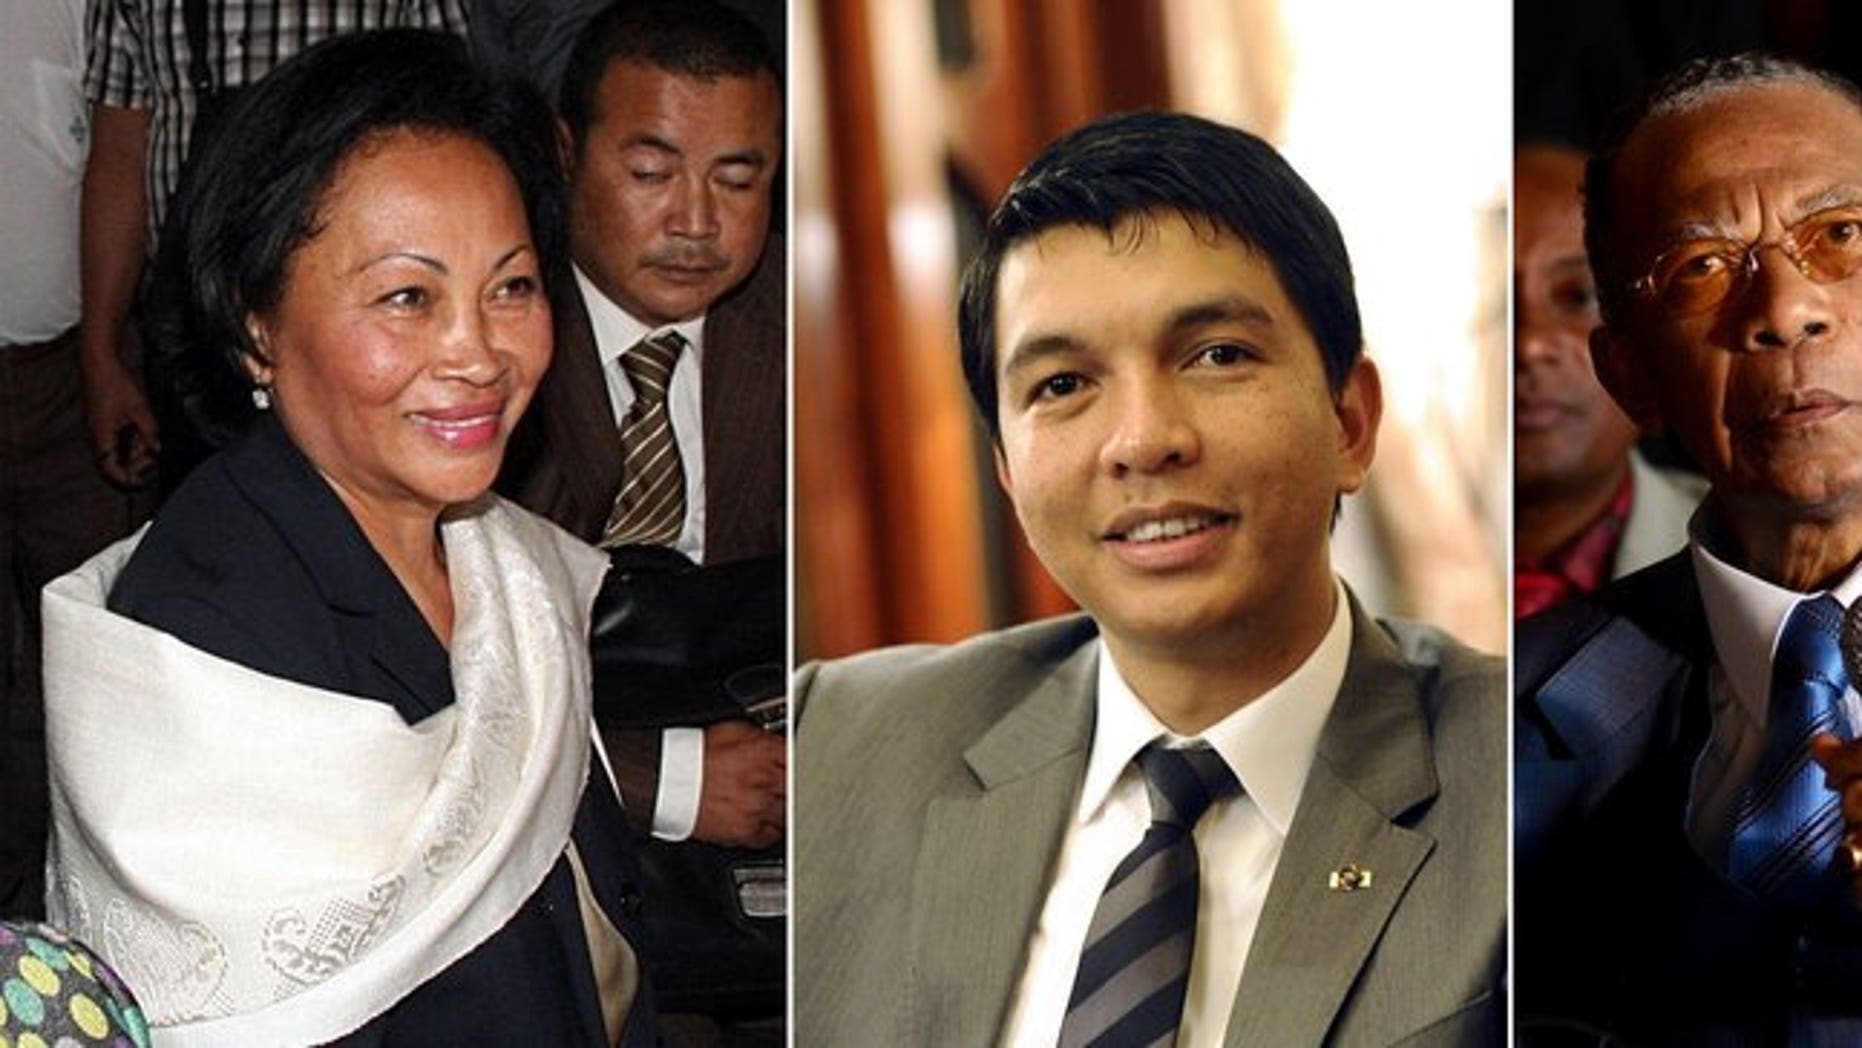 A combination of file pictures made on June 5, 2013 shows Madagascar's presidential candidates (L-R) Lalao Ravalomanana, Andry Rajoelina and Didier Ratsiraka. Madagascar's electoral court has removed the names of three presidential hopefuls whose candidacies had delayed key elections on the Indian Ocean island, a roll published on August 17, 2013 showed.